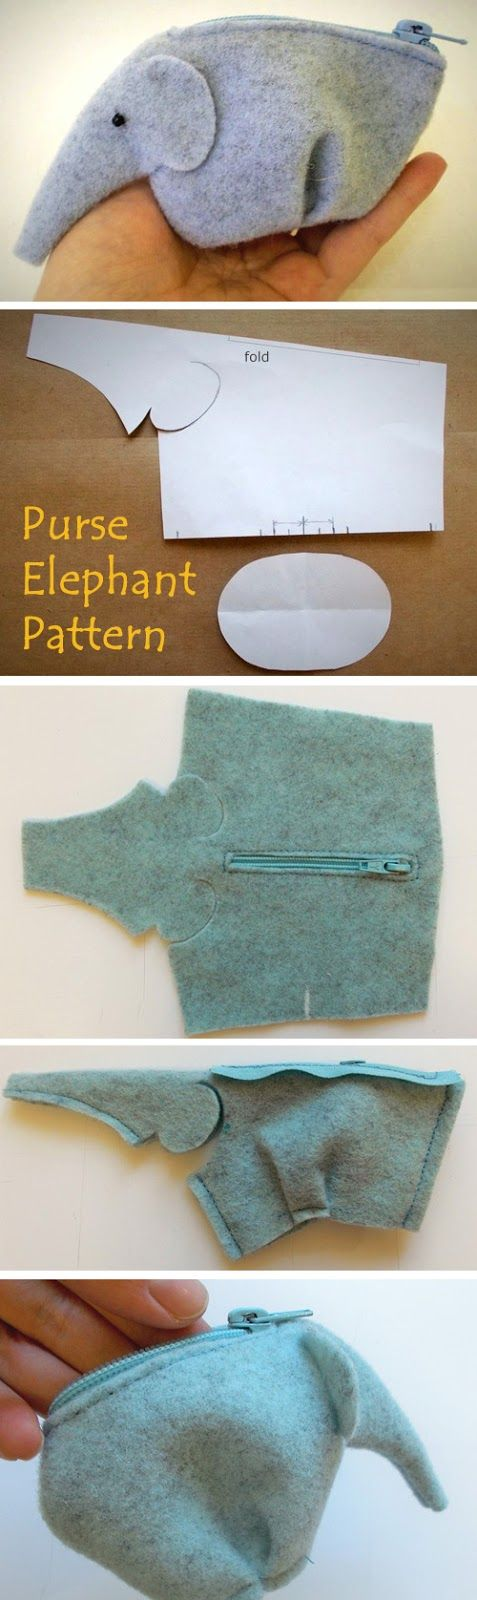 How to Sew Purse Elephant. Photo Sewing Tutorial…